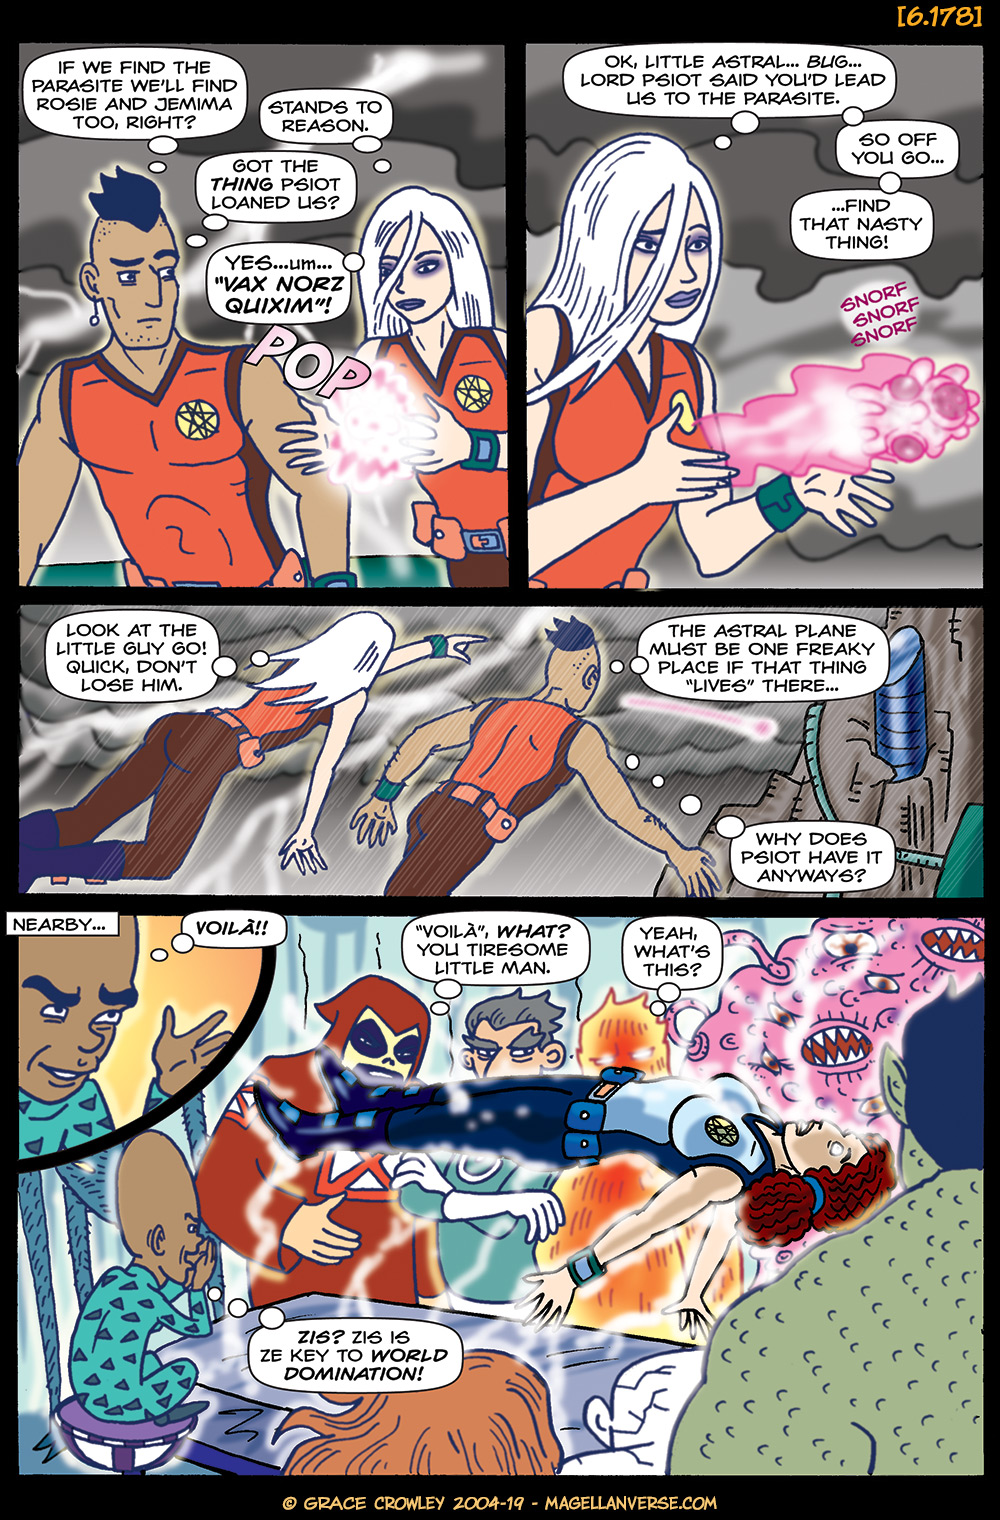 Page 6.178